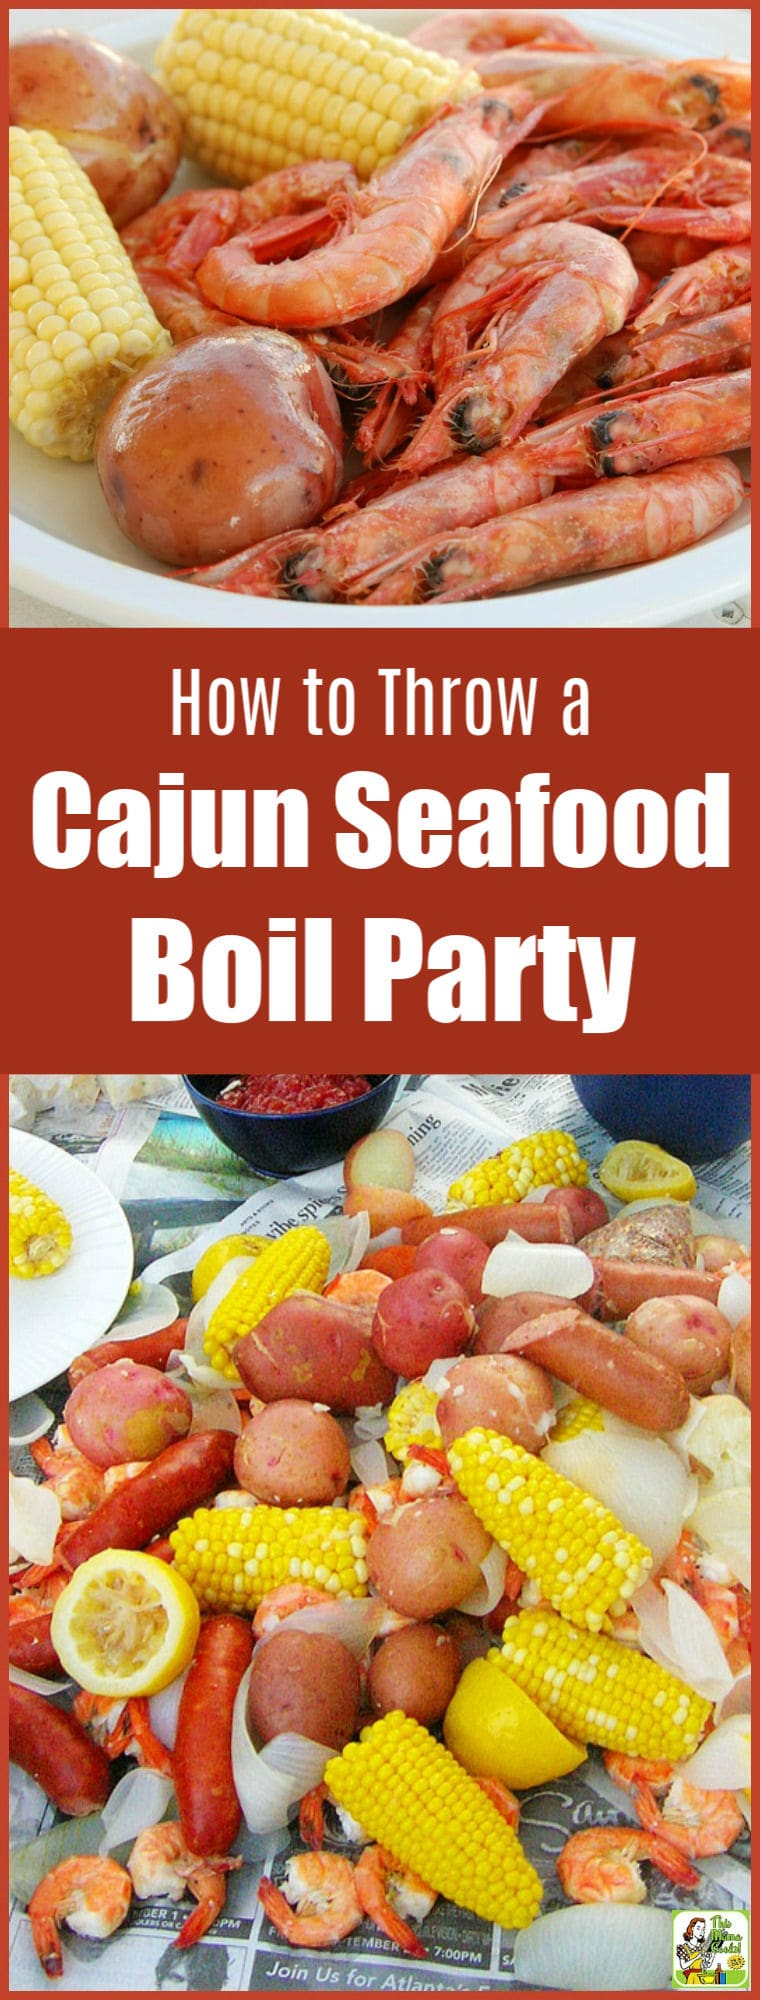 Learn how to throw a Cajun seafood boil party. It's fun! Get tips on equipment, best Cajun seasoning, where to buy crawfish, and what kind of seafood, sausage, and vegetables to use. #recipe #recipes #party #partyfood #seafoodrecipes #seafood #crawfish #shrimp #shrimprecipes #mardigras #glutenfree